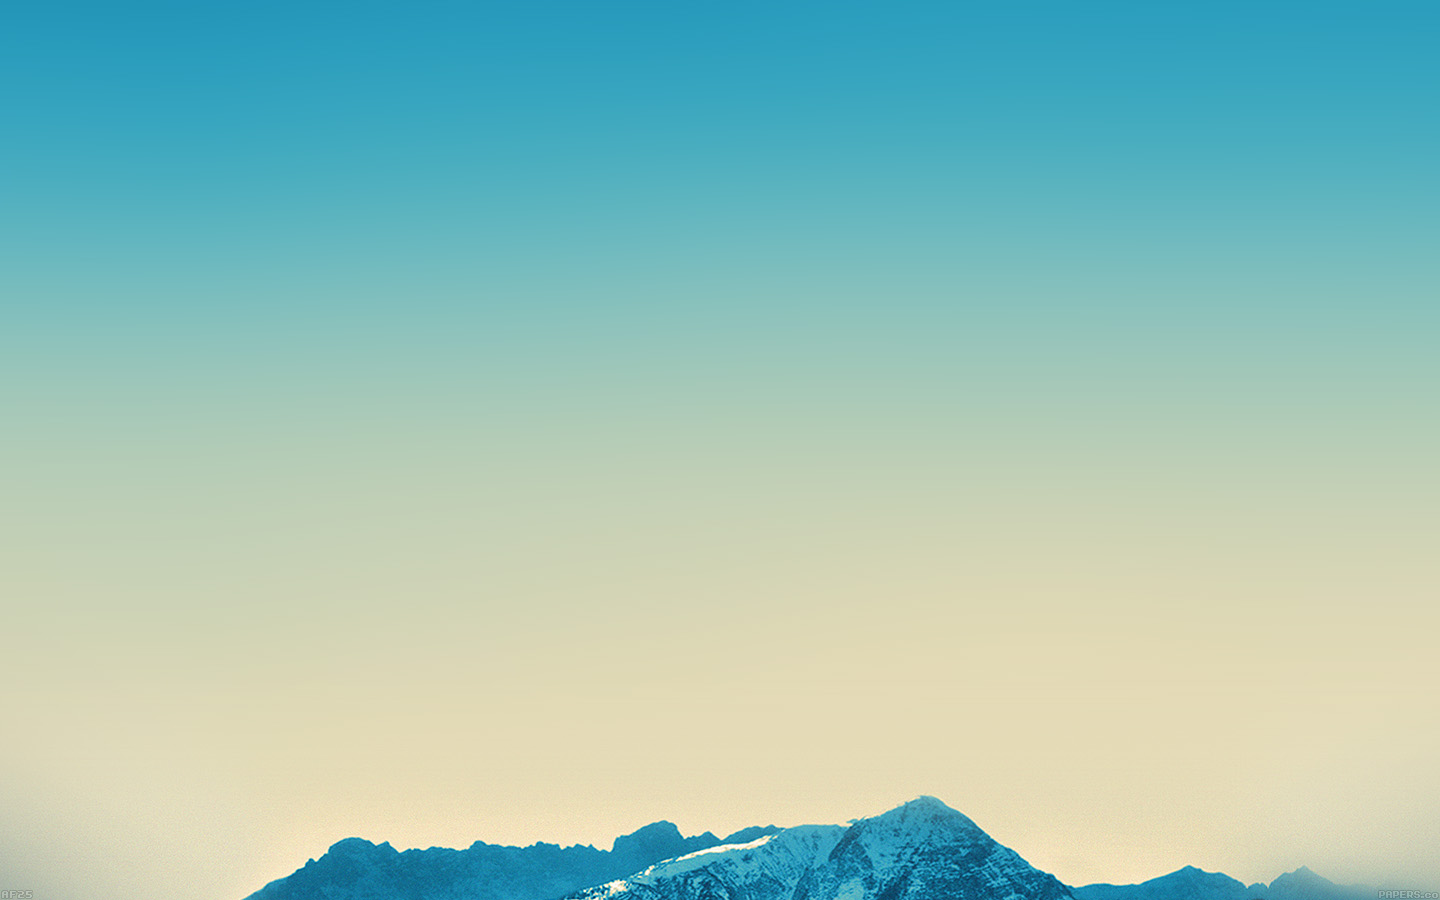 af25-ipad-air-2-wallpaper-official-mountain-apple-art-wallpaper